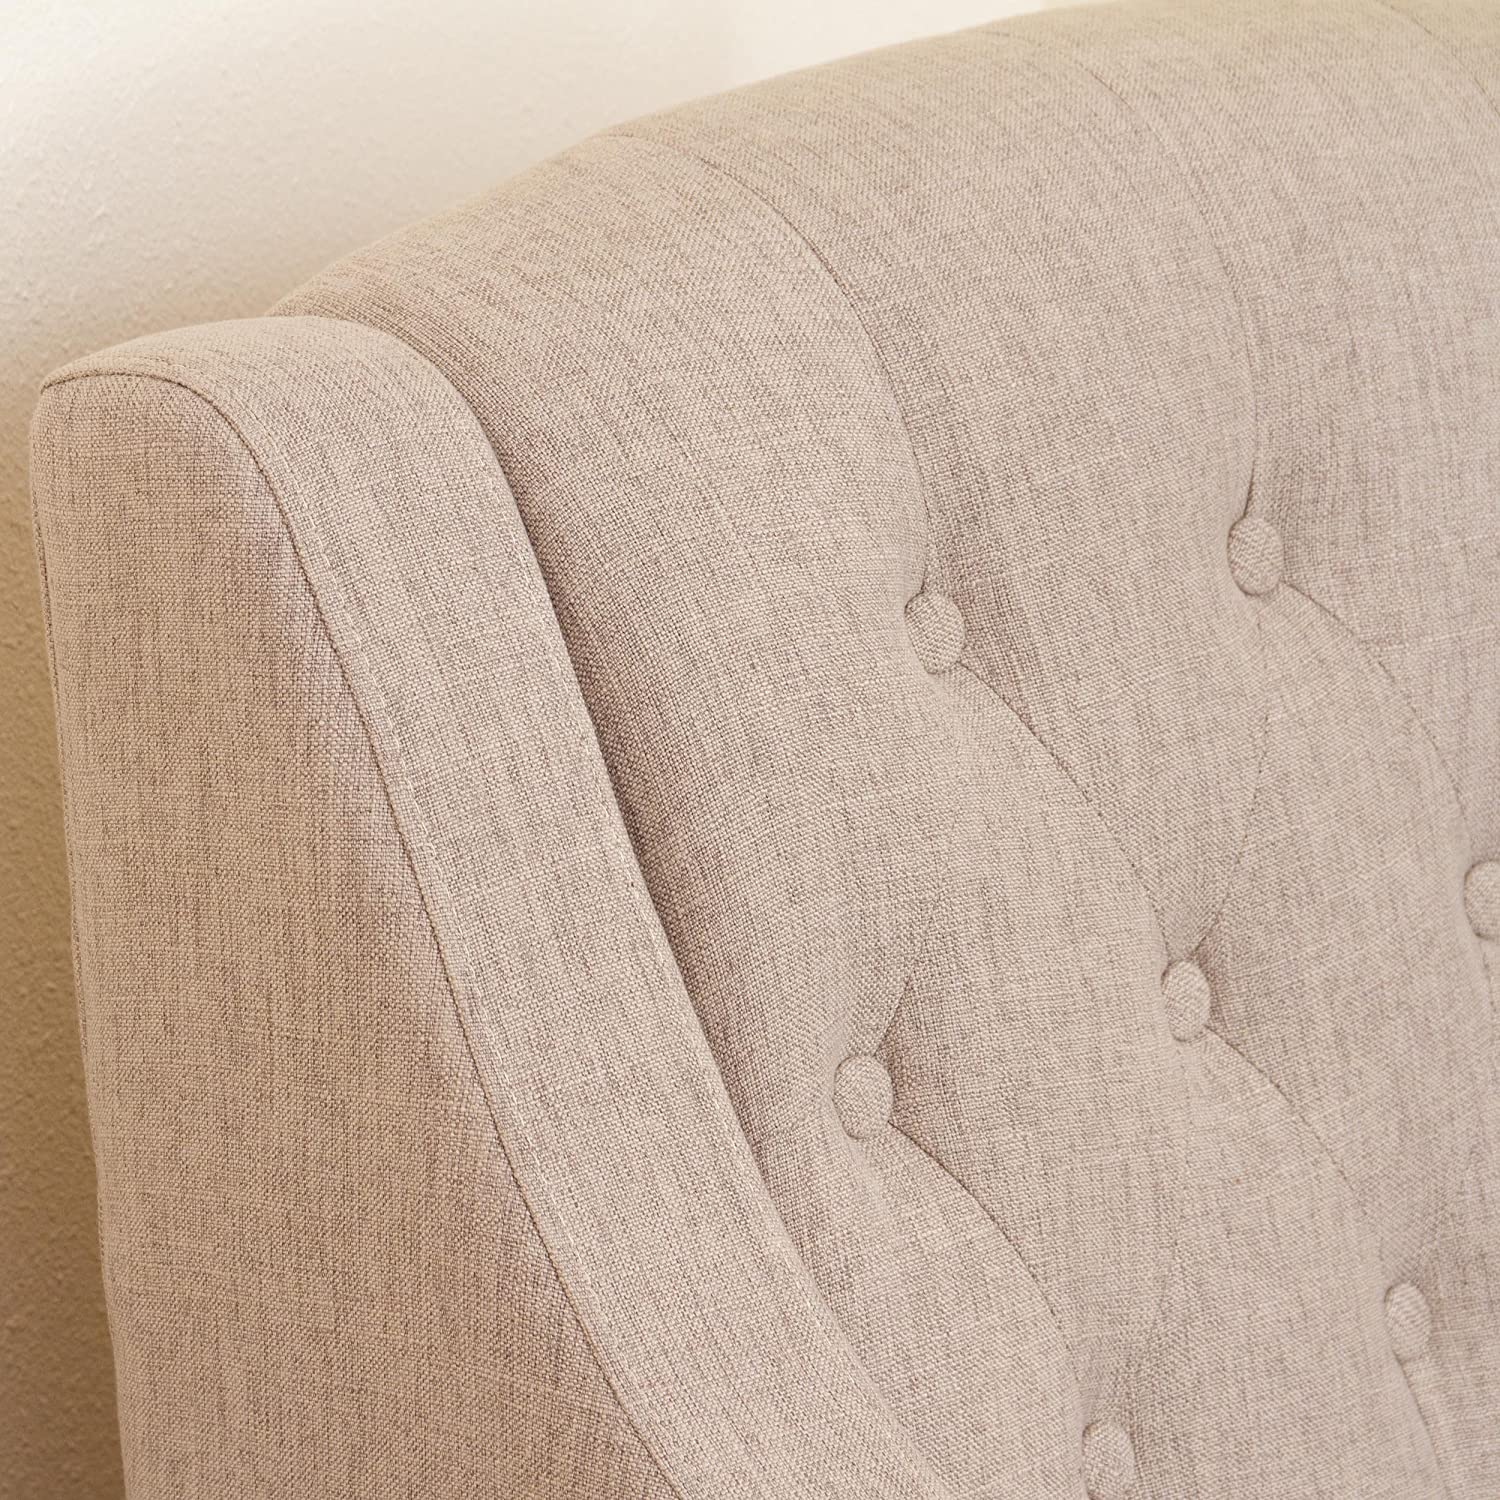 Best Selling Evans Tufted Fabric Chair and Ottoman, Off-White